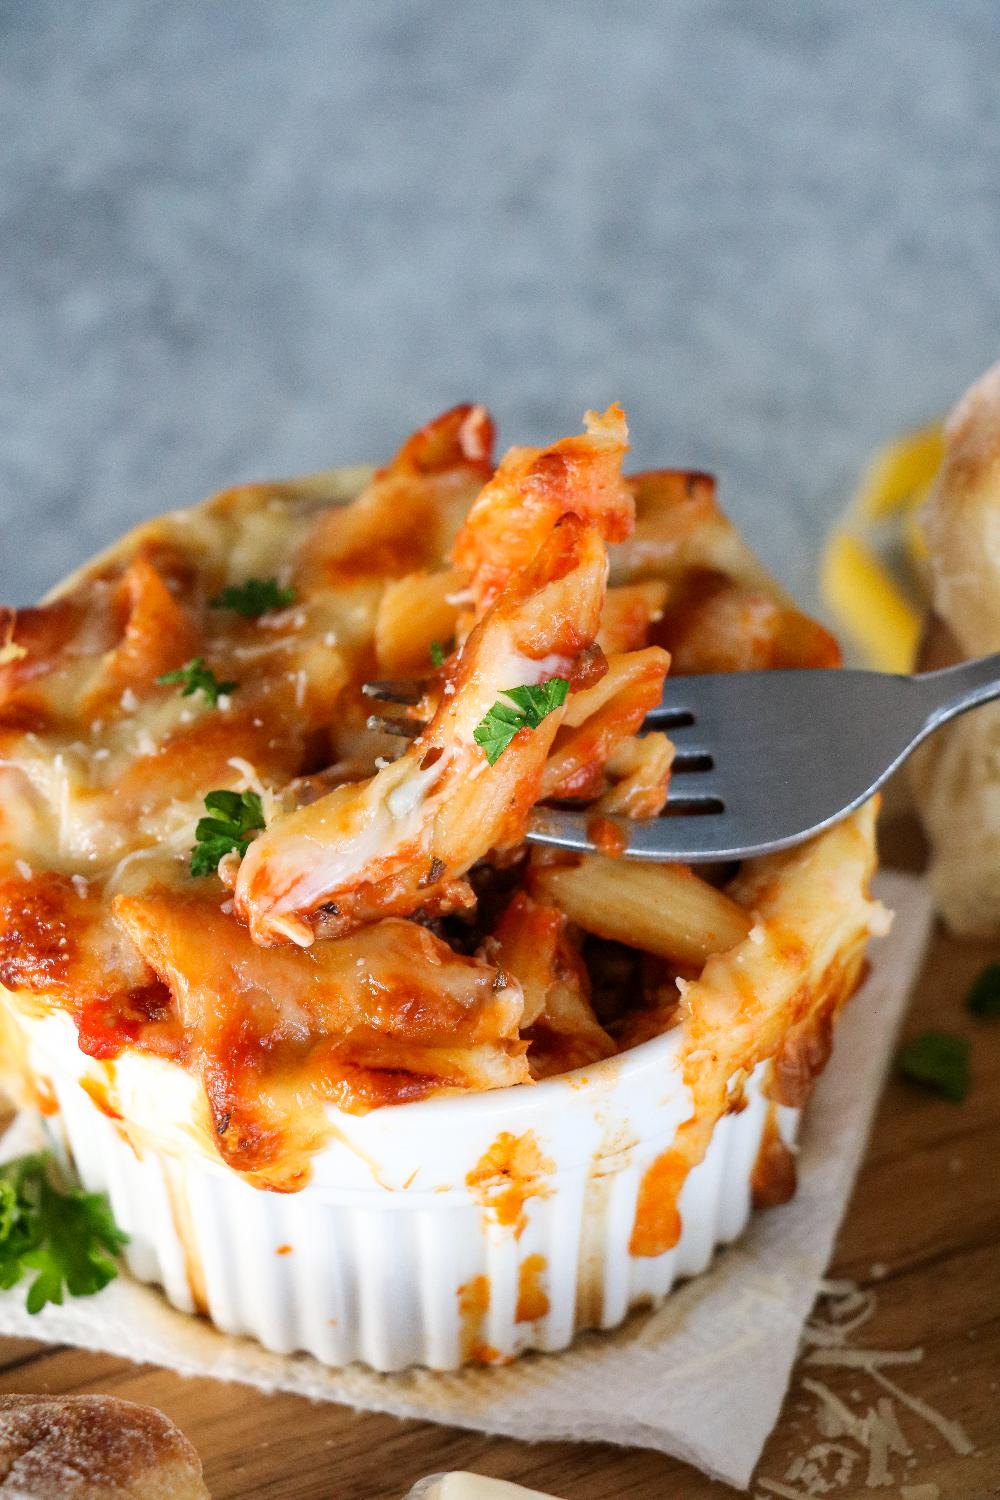 A forkful of Baked Ziti with fresh parsley.